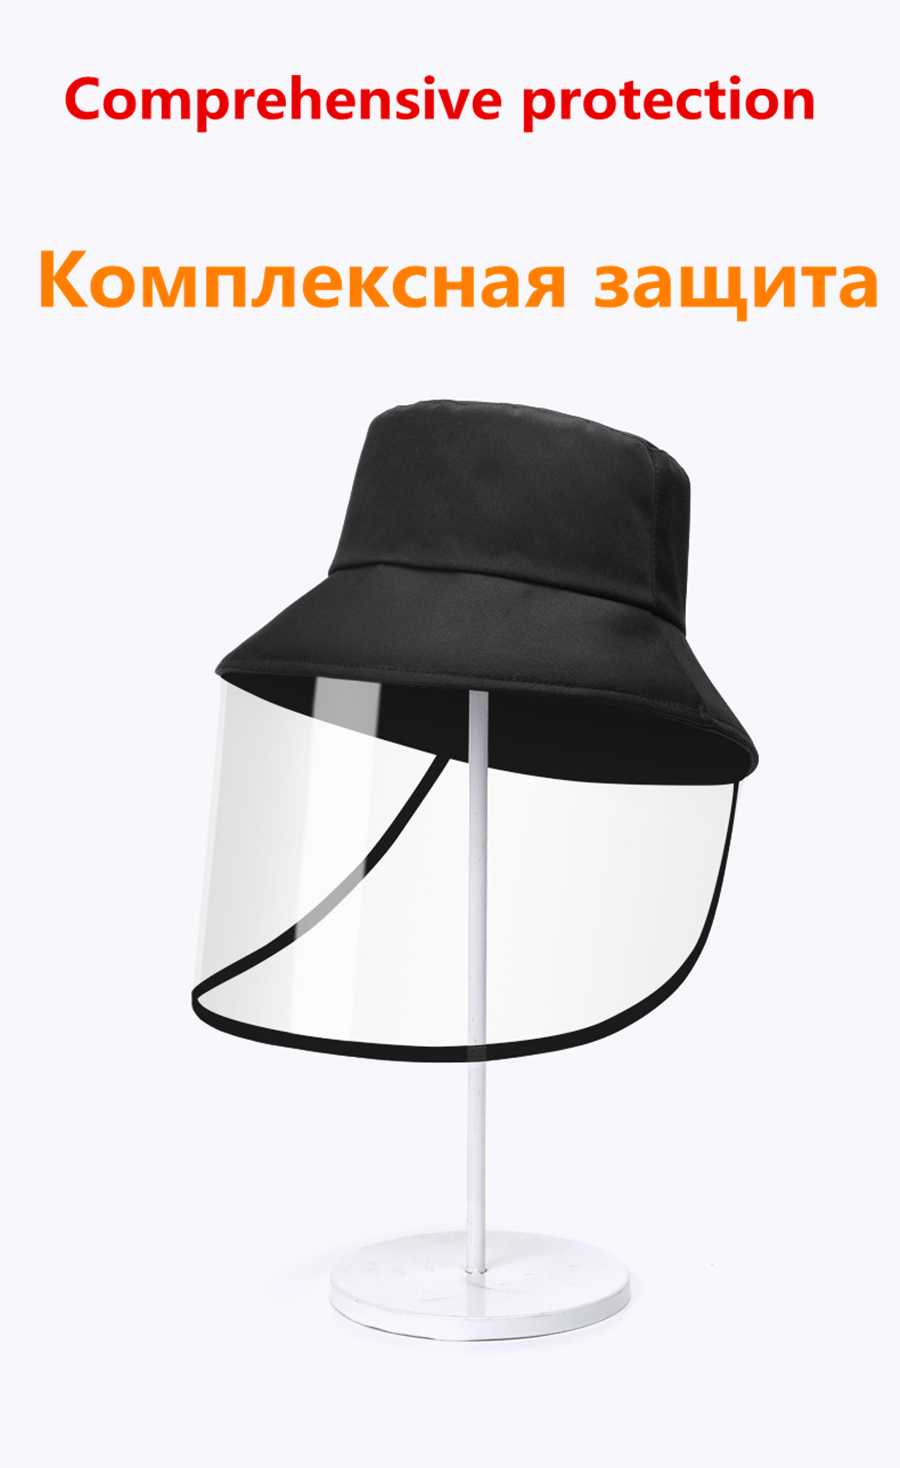 H95196e8f218c4e9c9e5d17e5a43506ddM - Anti-fog Panama Hat Unisex Summer Anti-saliva Bucket Hats Big Brim Transparent TPU protection Removable Fisherman hat Sun Cap